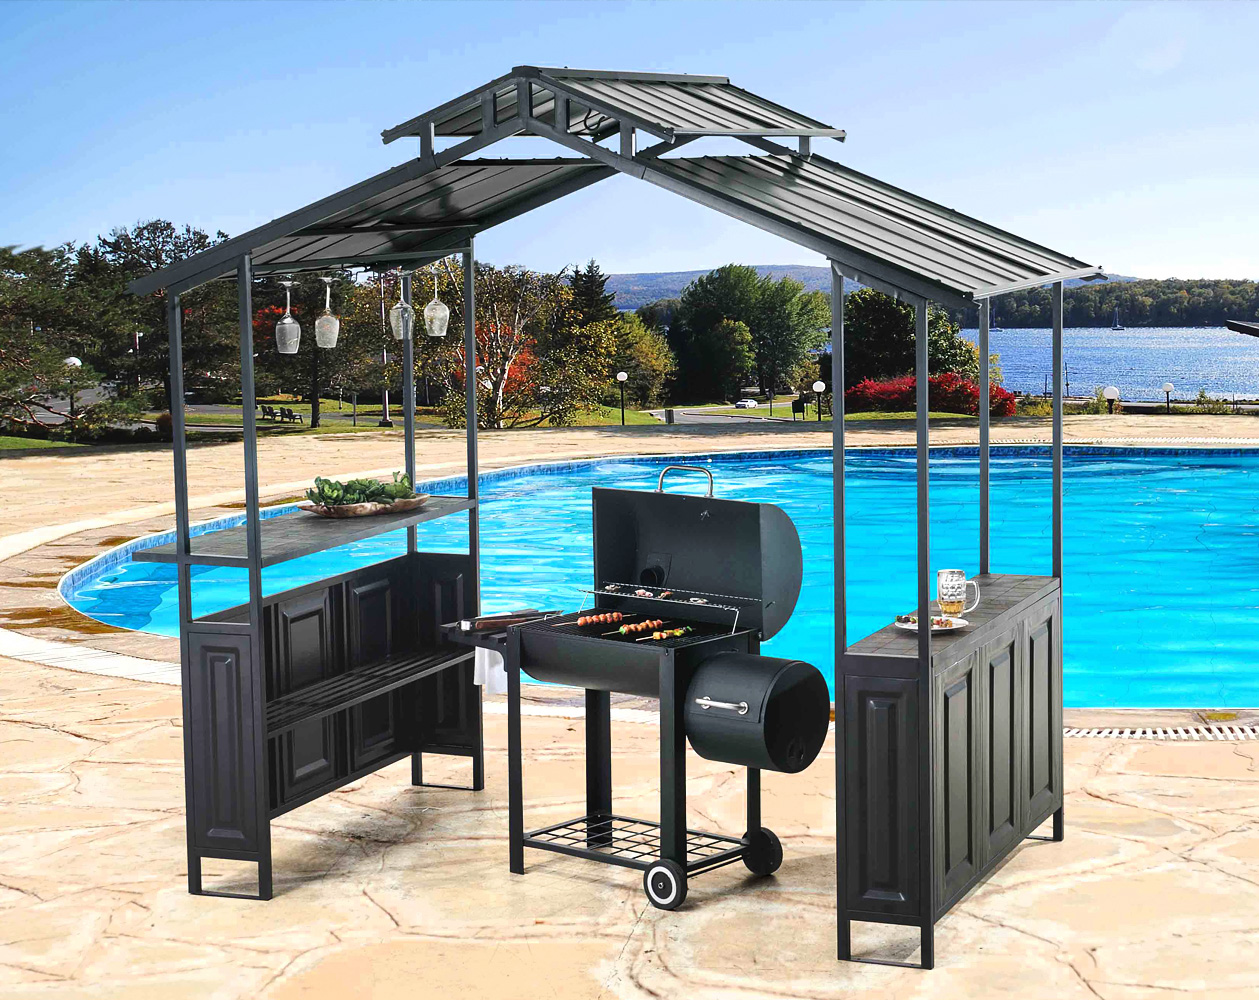 Gentil Grill Gazebo. Our Outdoor Furniture Collection Is Beautifully Styled,  Weather Resistant And Guaranteed To Bring Interior Decor Aesthetics To The  Outdoor ...